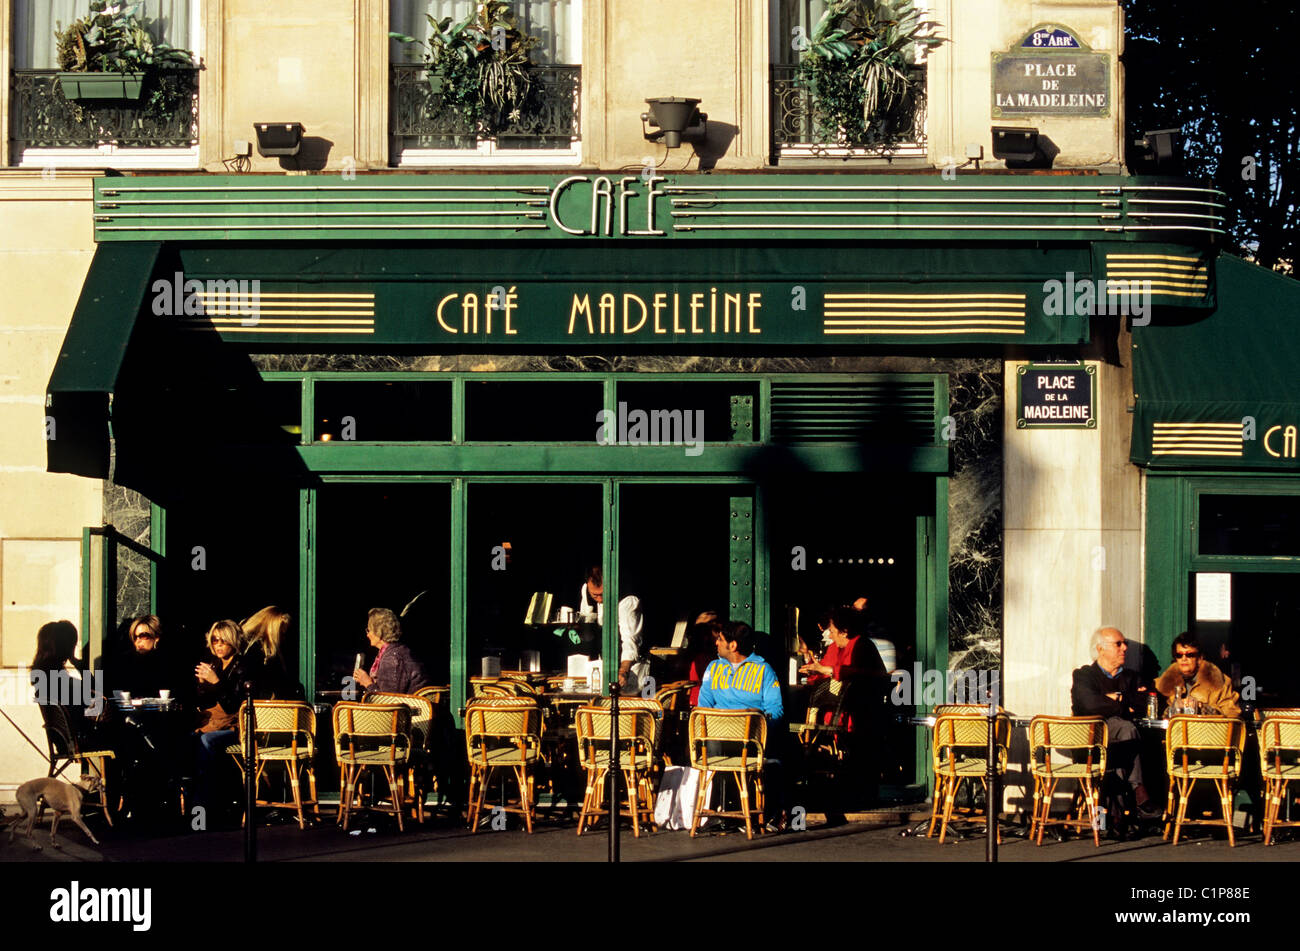 france paris place de la madeleine cafe madeleine stock photo royalty free image 35524846. Black Bedroom Furniture Sets. Home Design Ideas